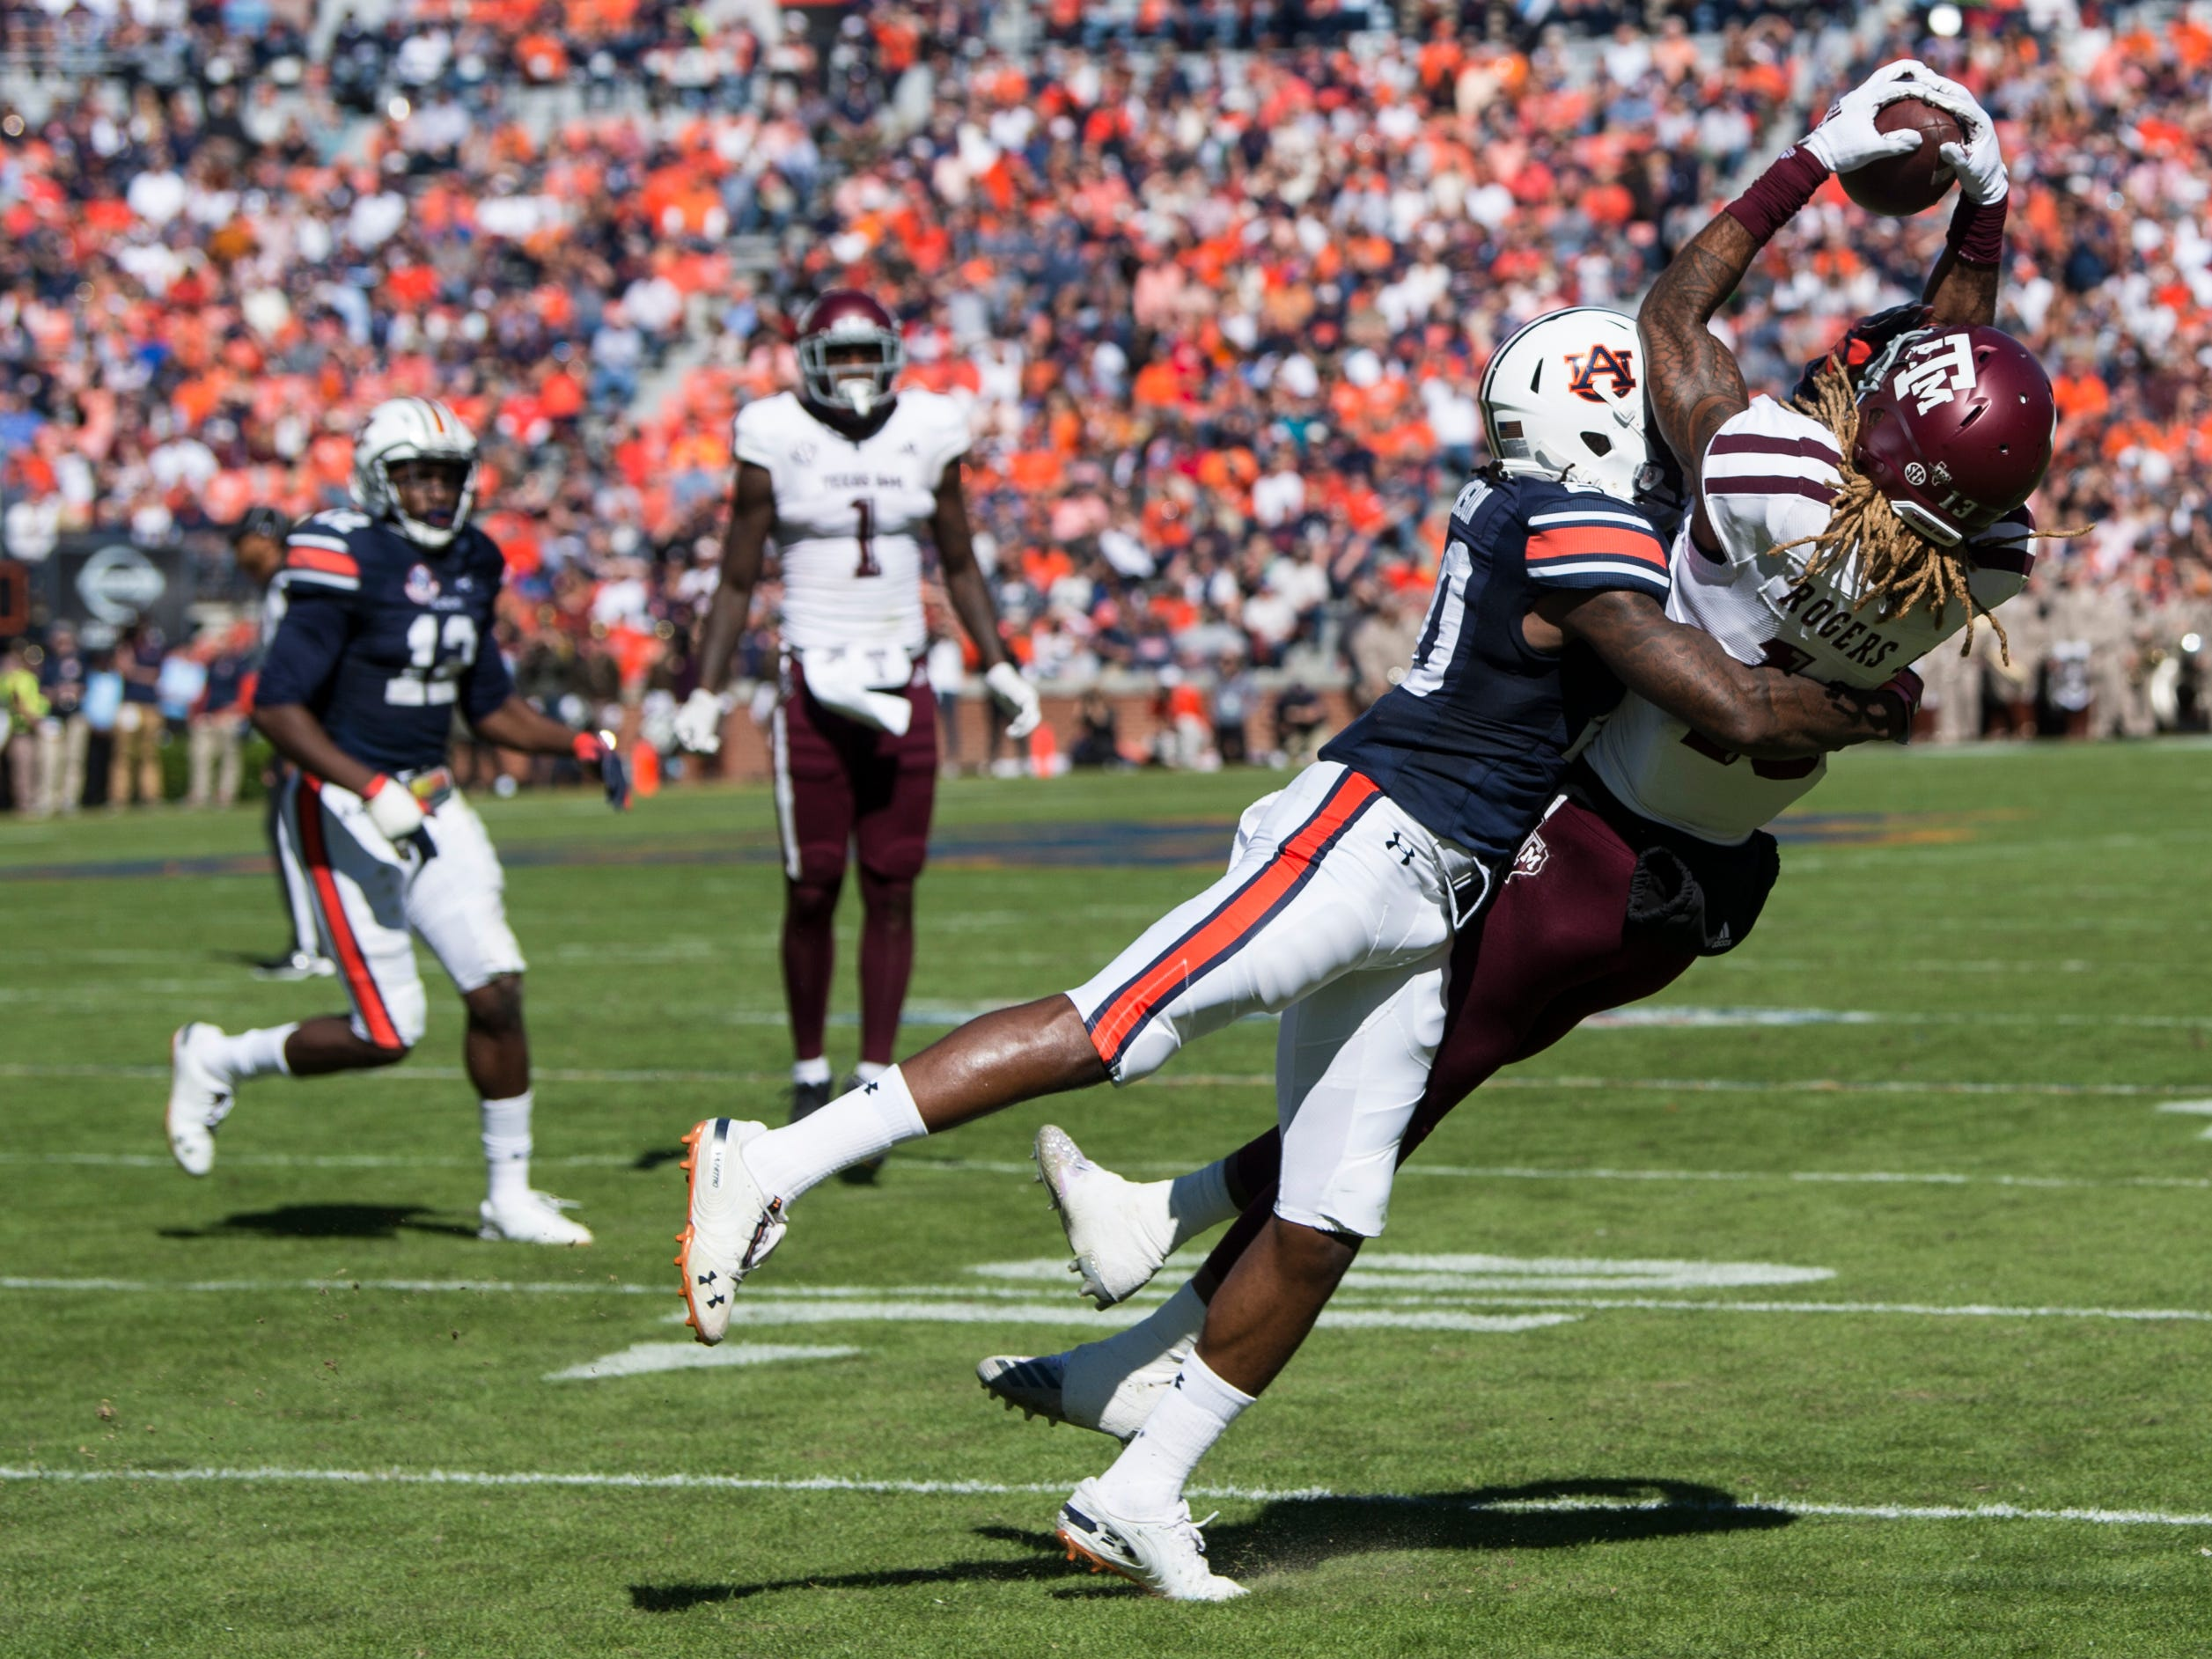 Texas A&M wide receiver Kendrick Rogers (13) pulls in a pass that is eventually dropped as he is hit by Auburn defensive back Jeremiah Dinson (20) at Jordan-Hare Stadium on Saturday, Nov. 3, 2018. Texas A&M leads Auburn17-14 at halftime.